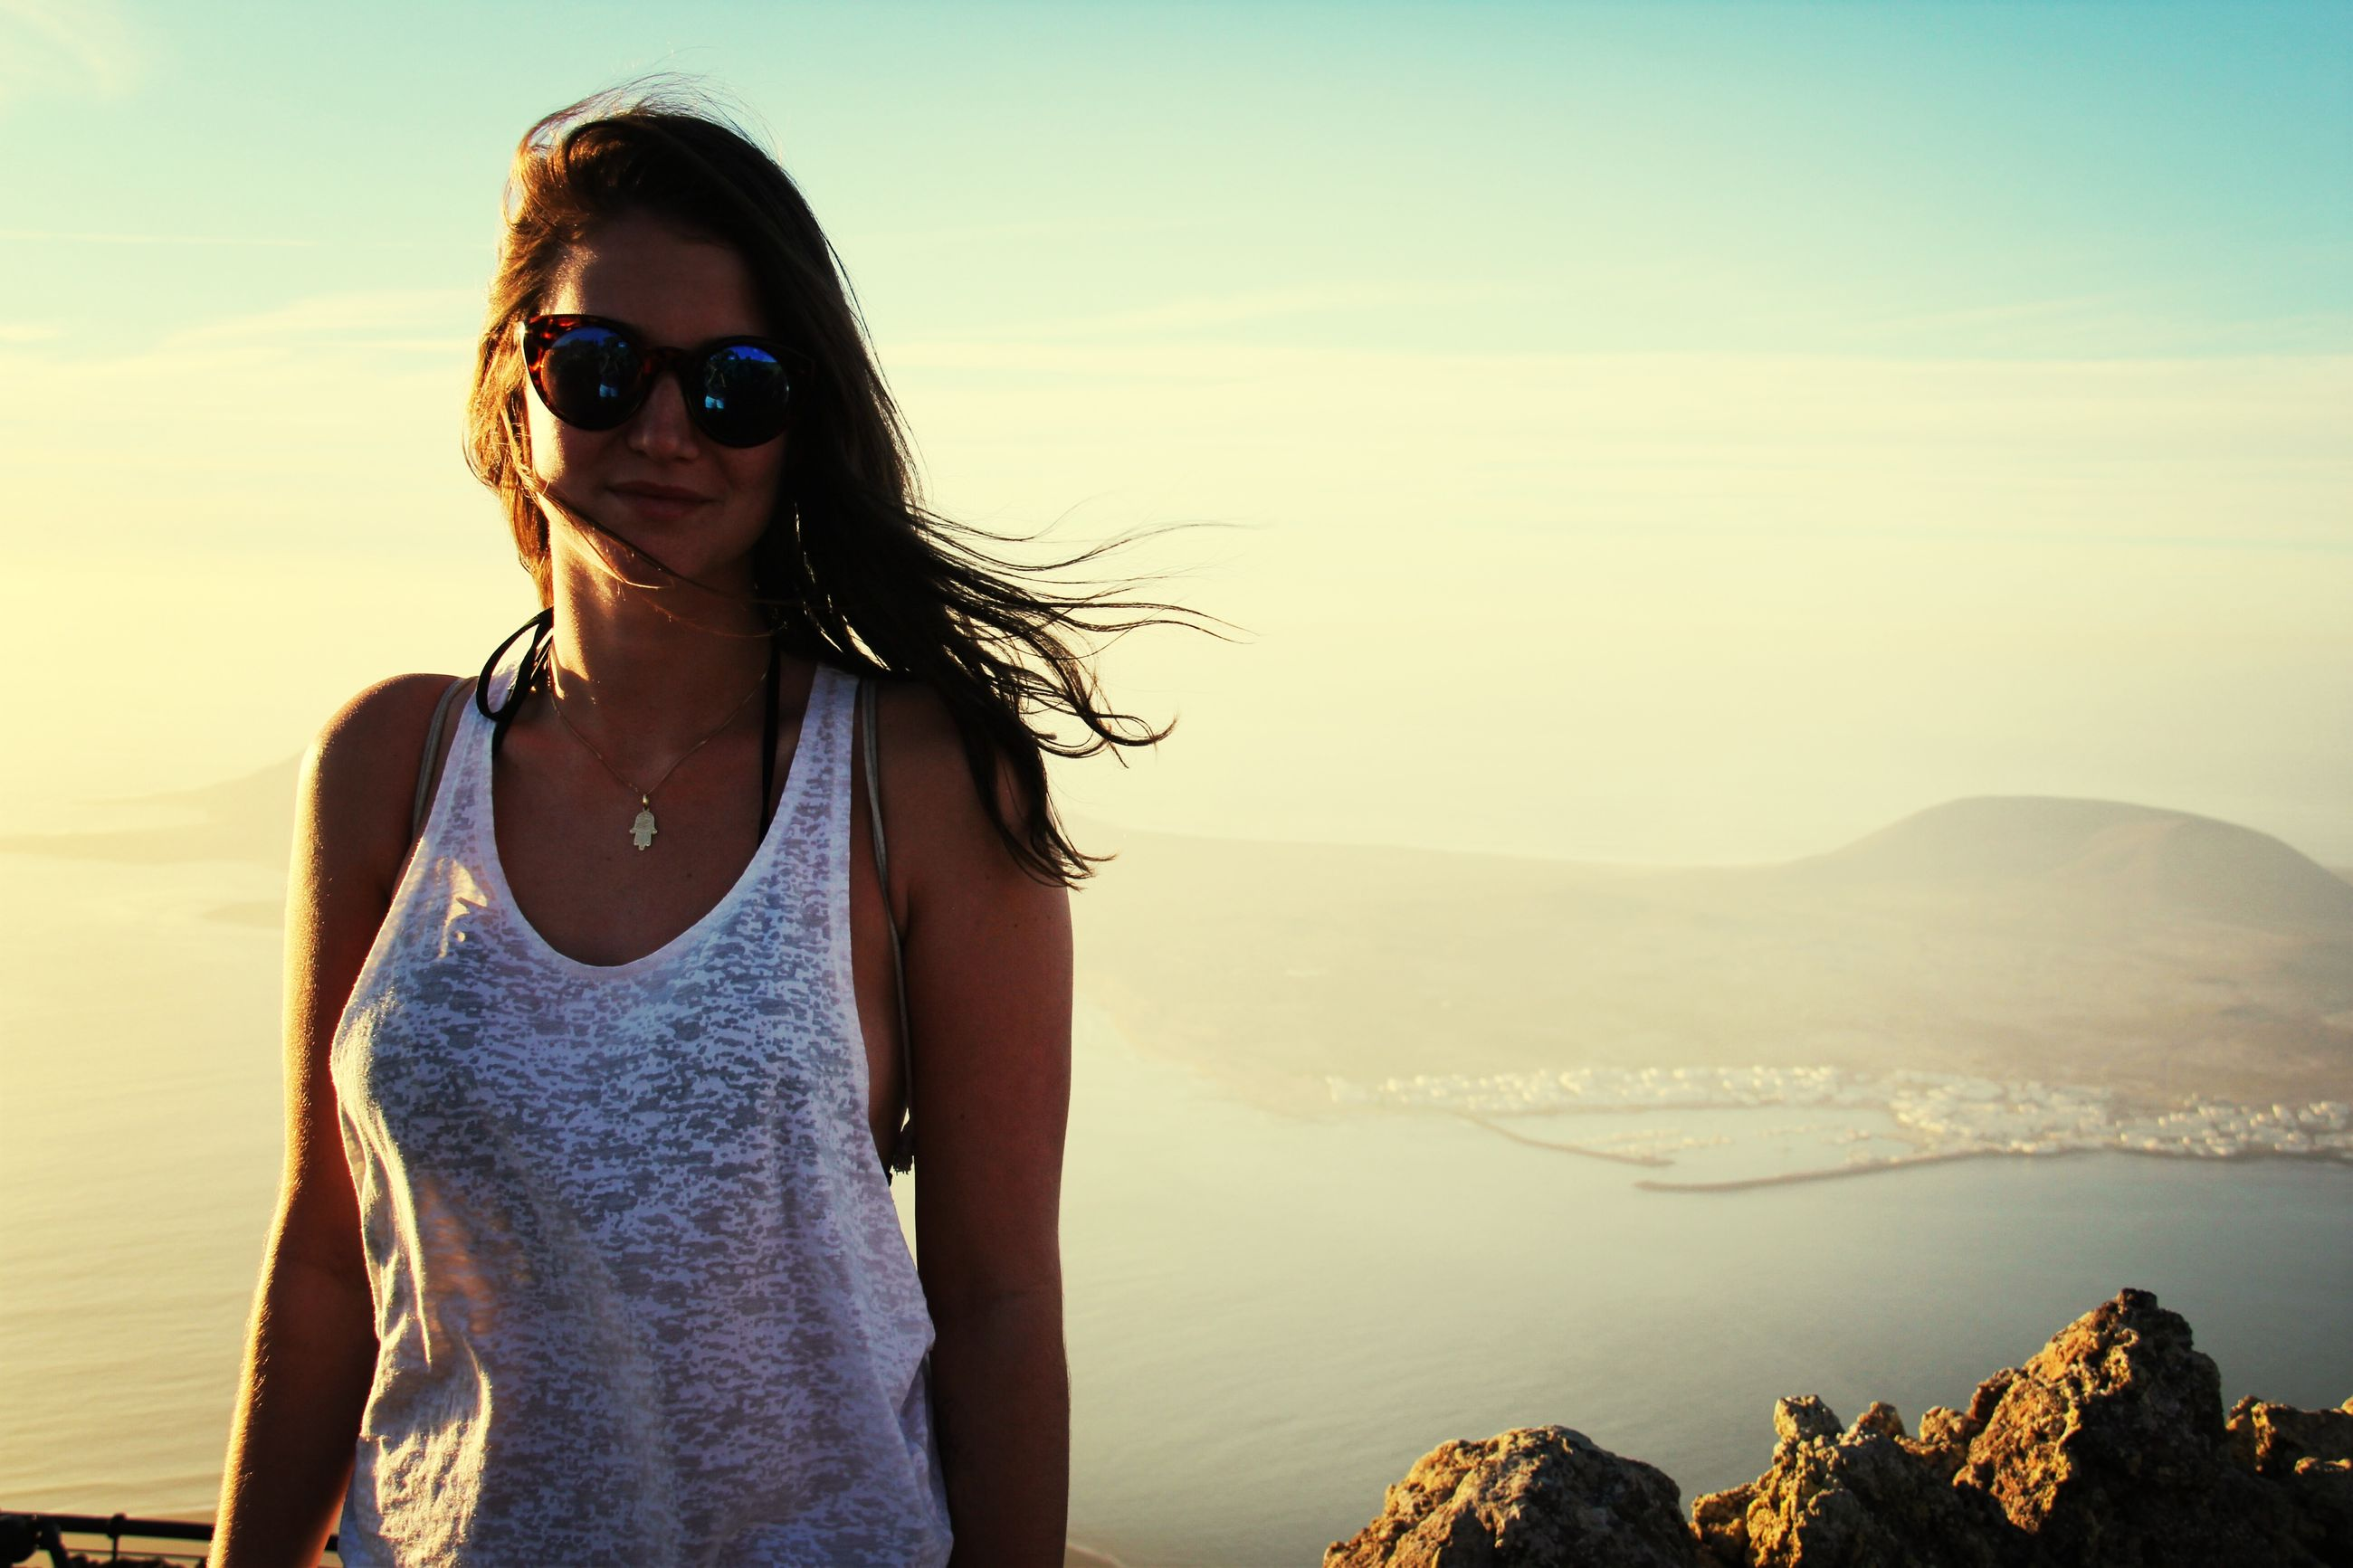 young adult, person, portrait, looking at camera, lifestyles, sunglasses, young women, casual clothing, leisure activity, mountain, front view, standing, smiling, sky, long hair, three quarter length, sunlight